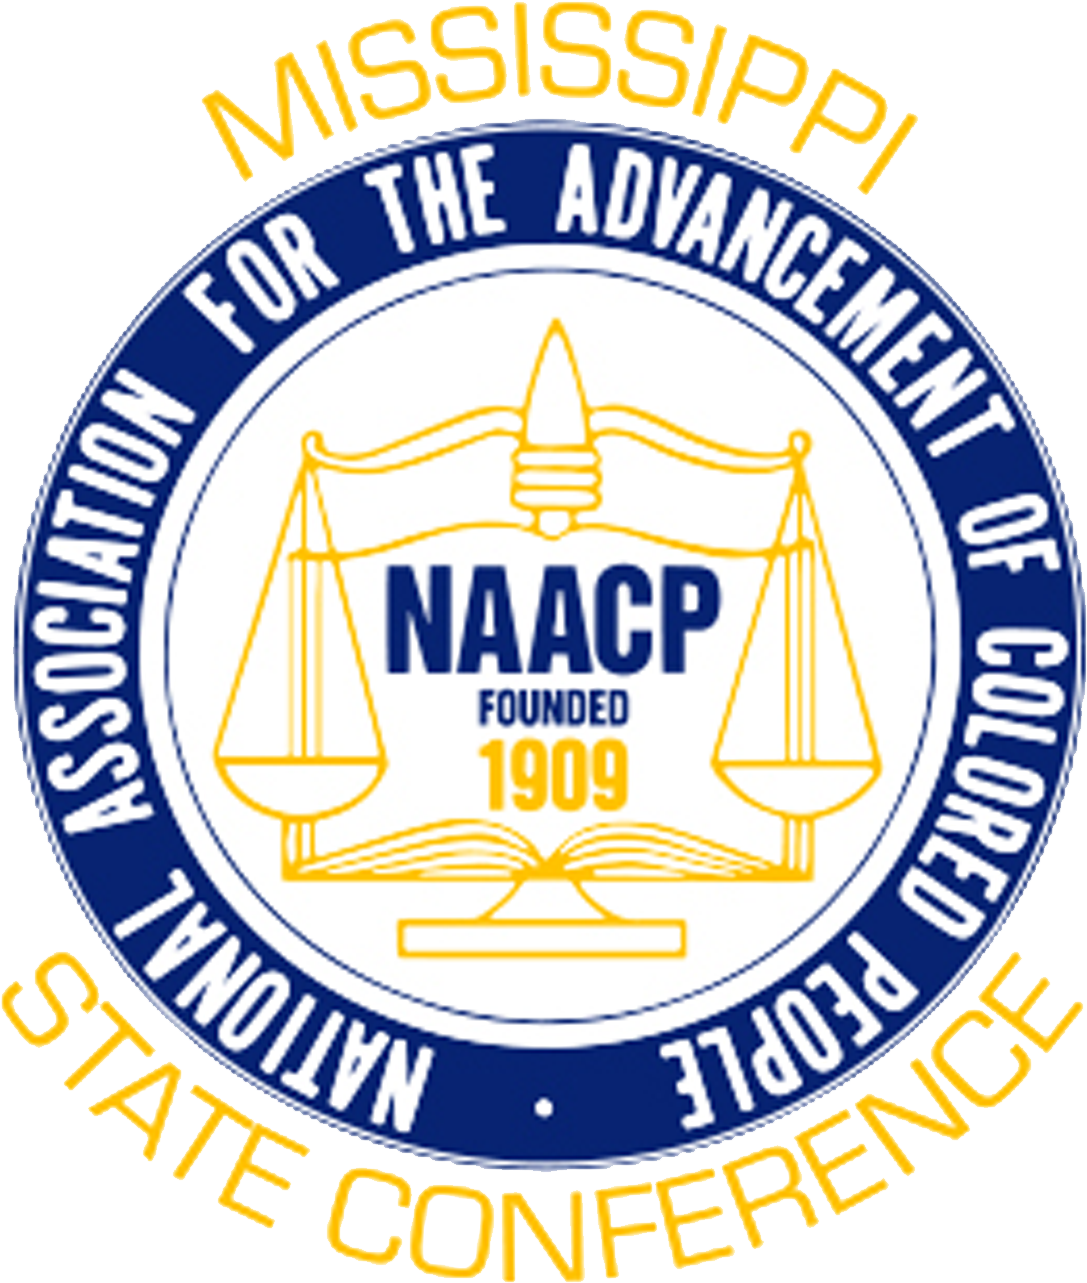 HD Donate To The Ms Naacp State Conference , Free Unlimited ... freeuse download